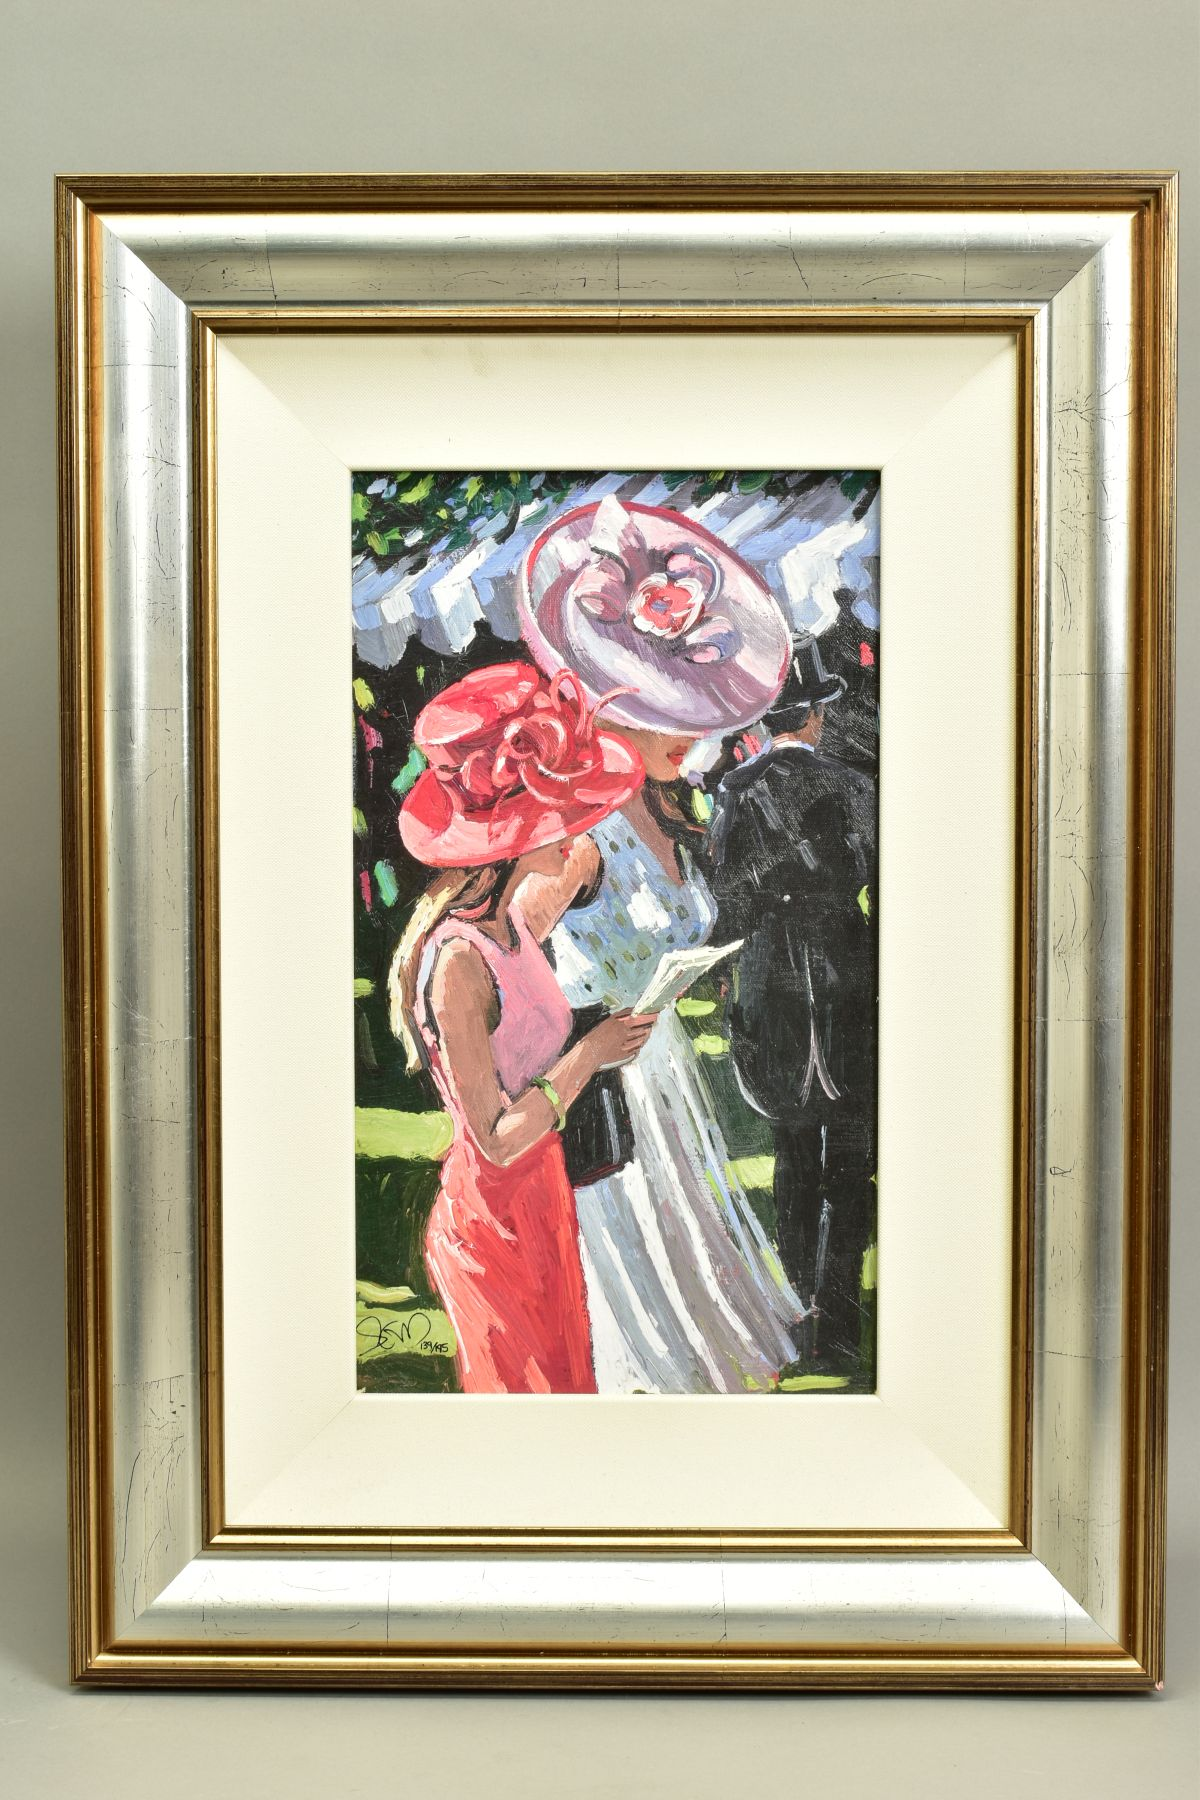 SHERREE VALENTINE DAINES (BRITISH 1959), 'Society Ladies', a Limited Edition print of female figures